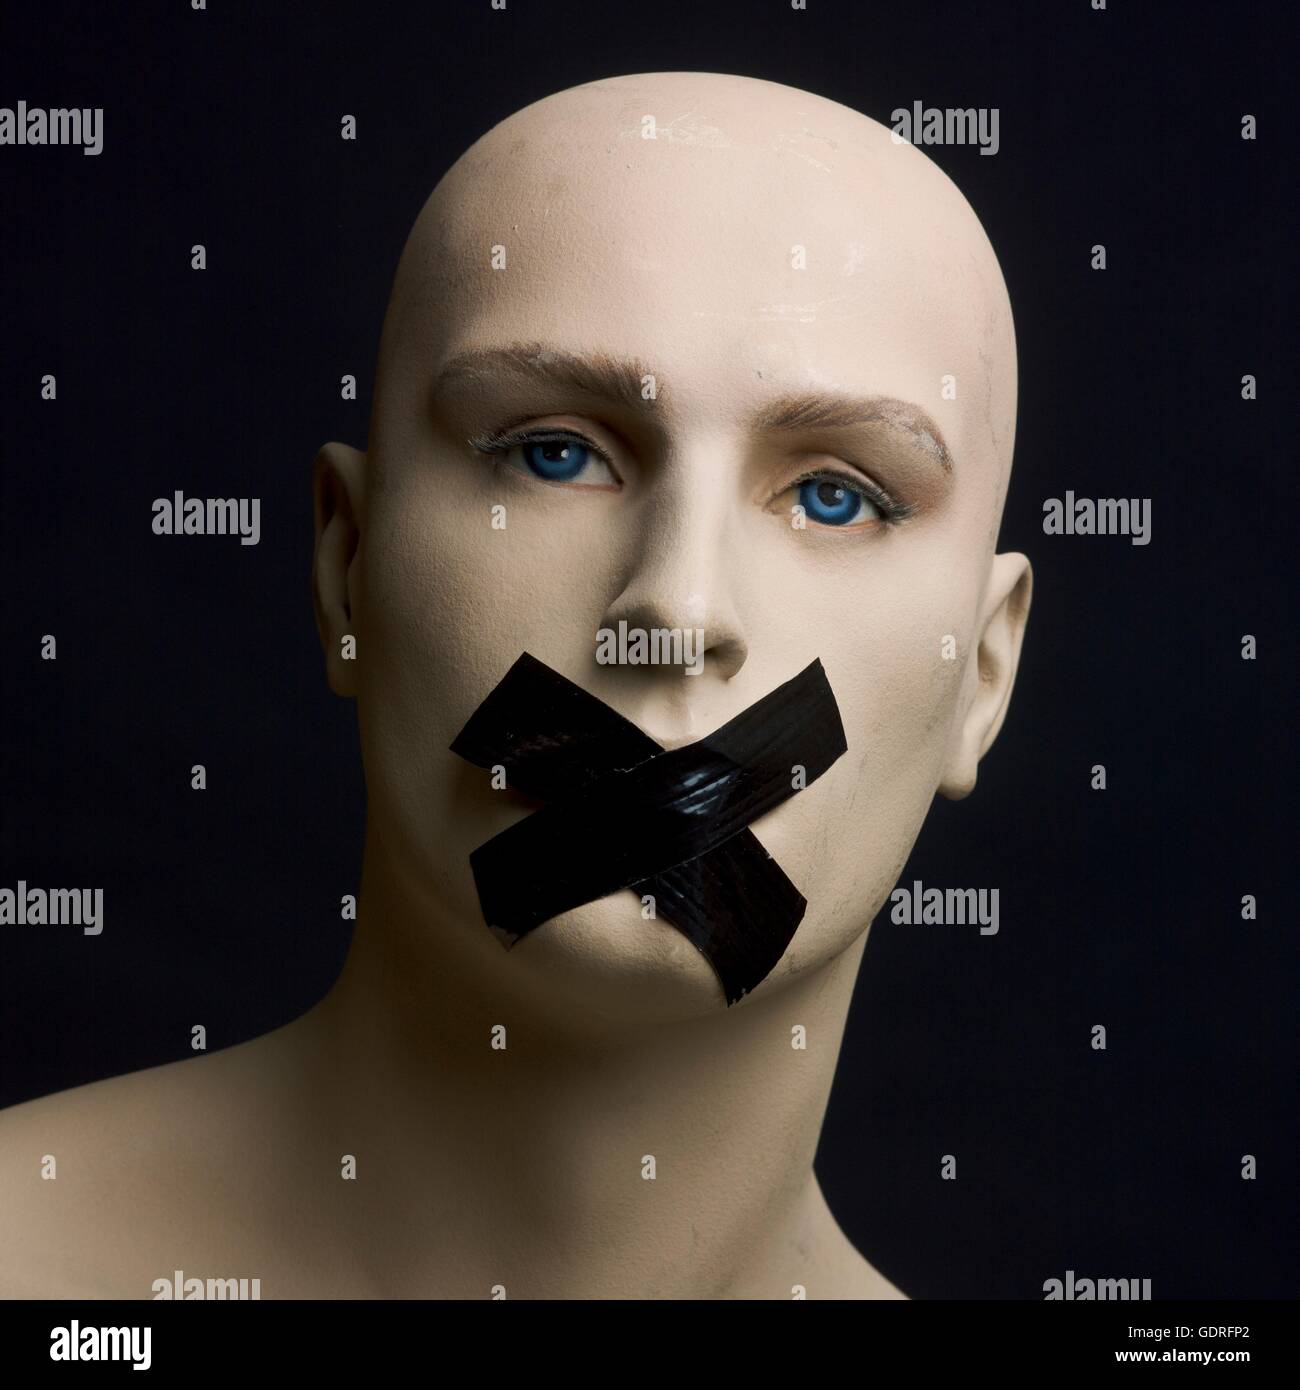 Dummy, mannequin, tape over mouth Stock Photo